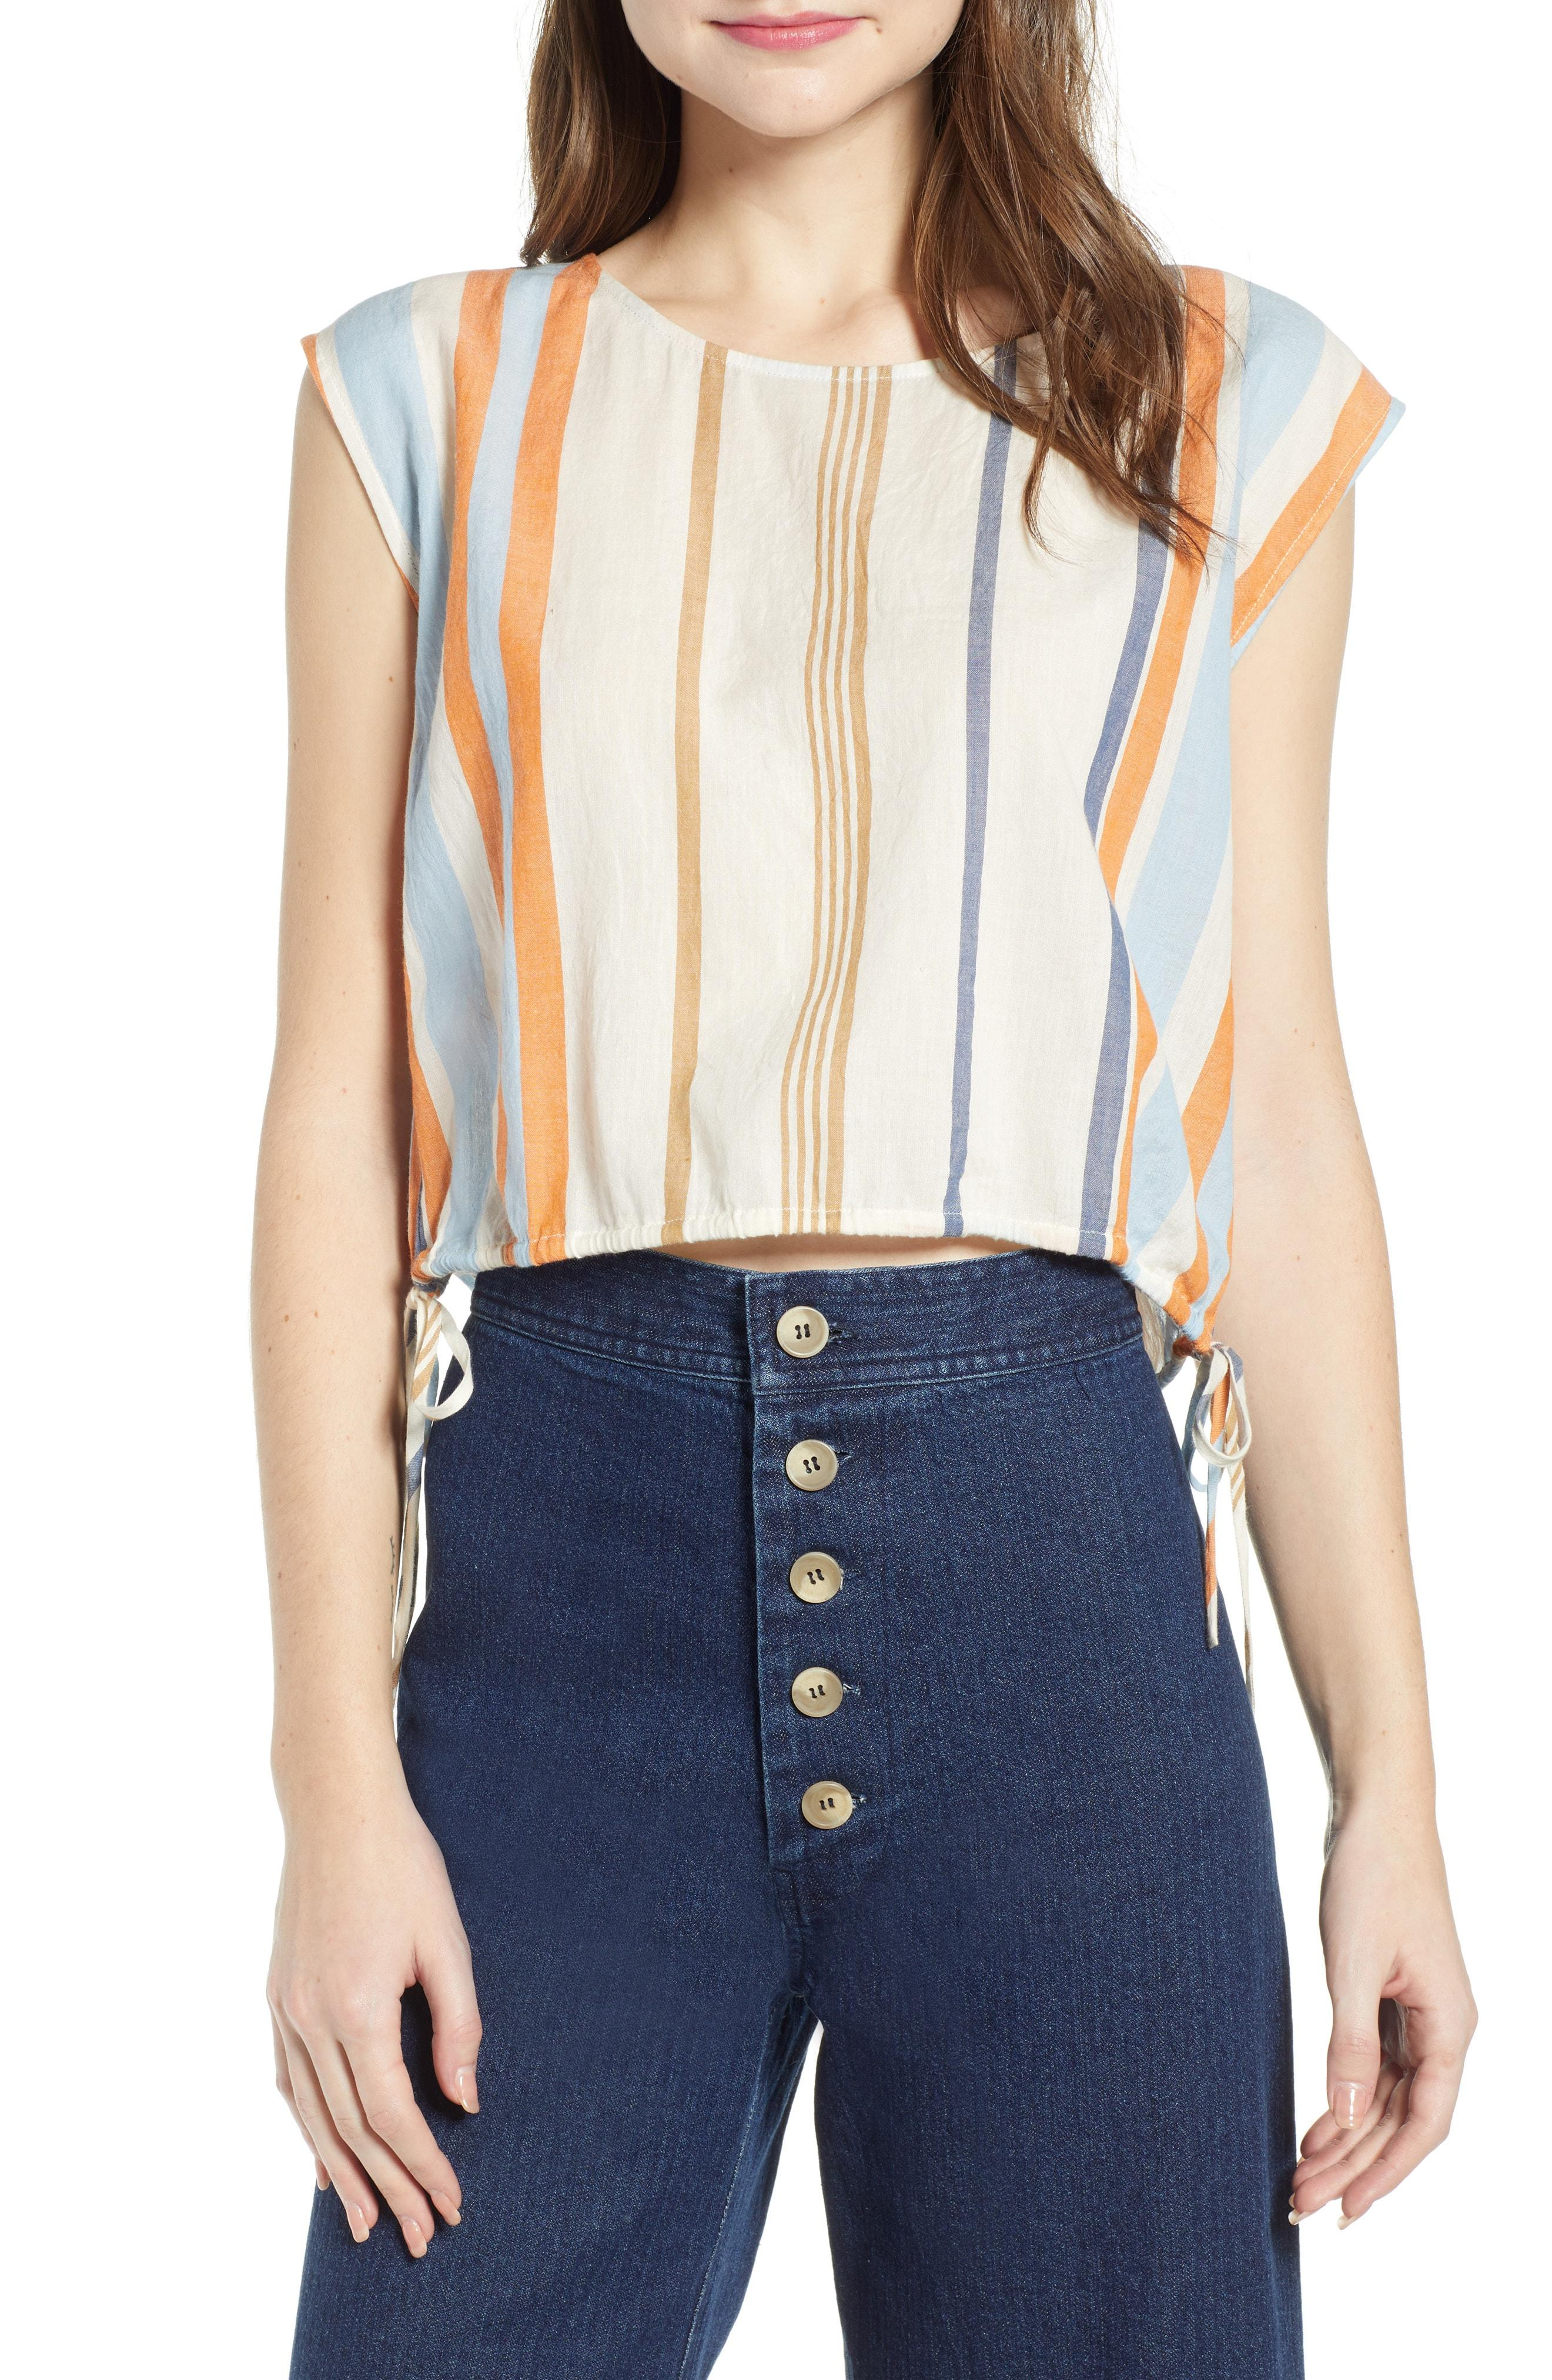 0d0b9e2330be9 Lyst - The Odells Crop Top in Blue